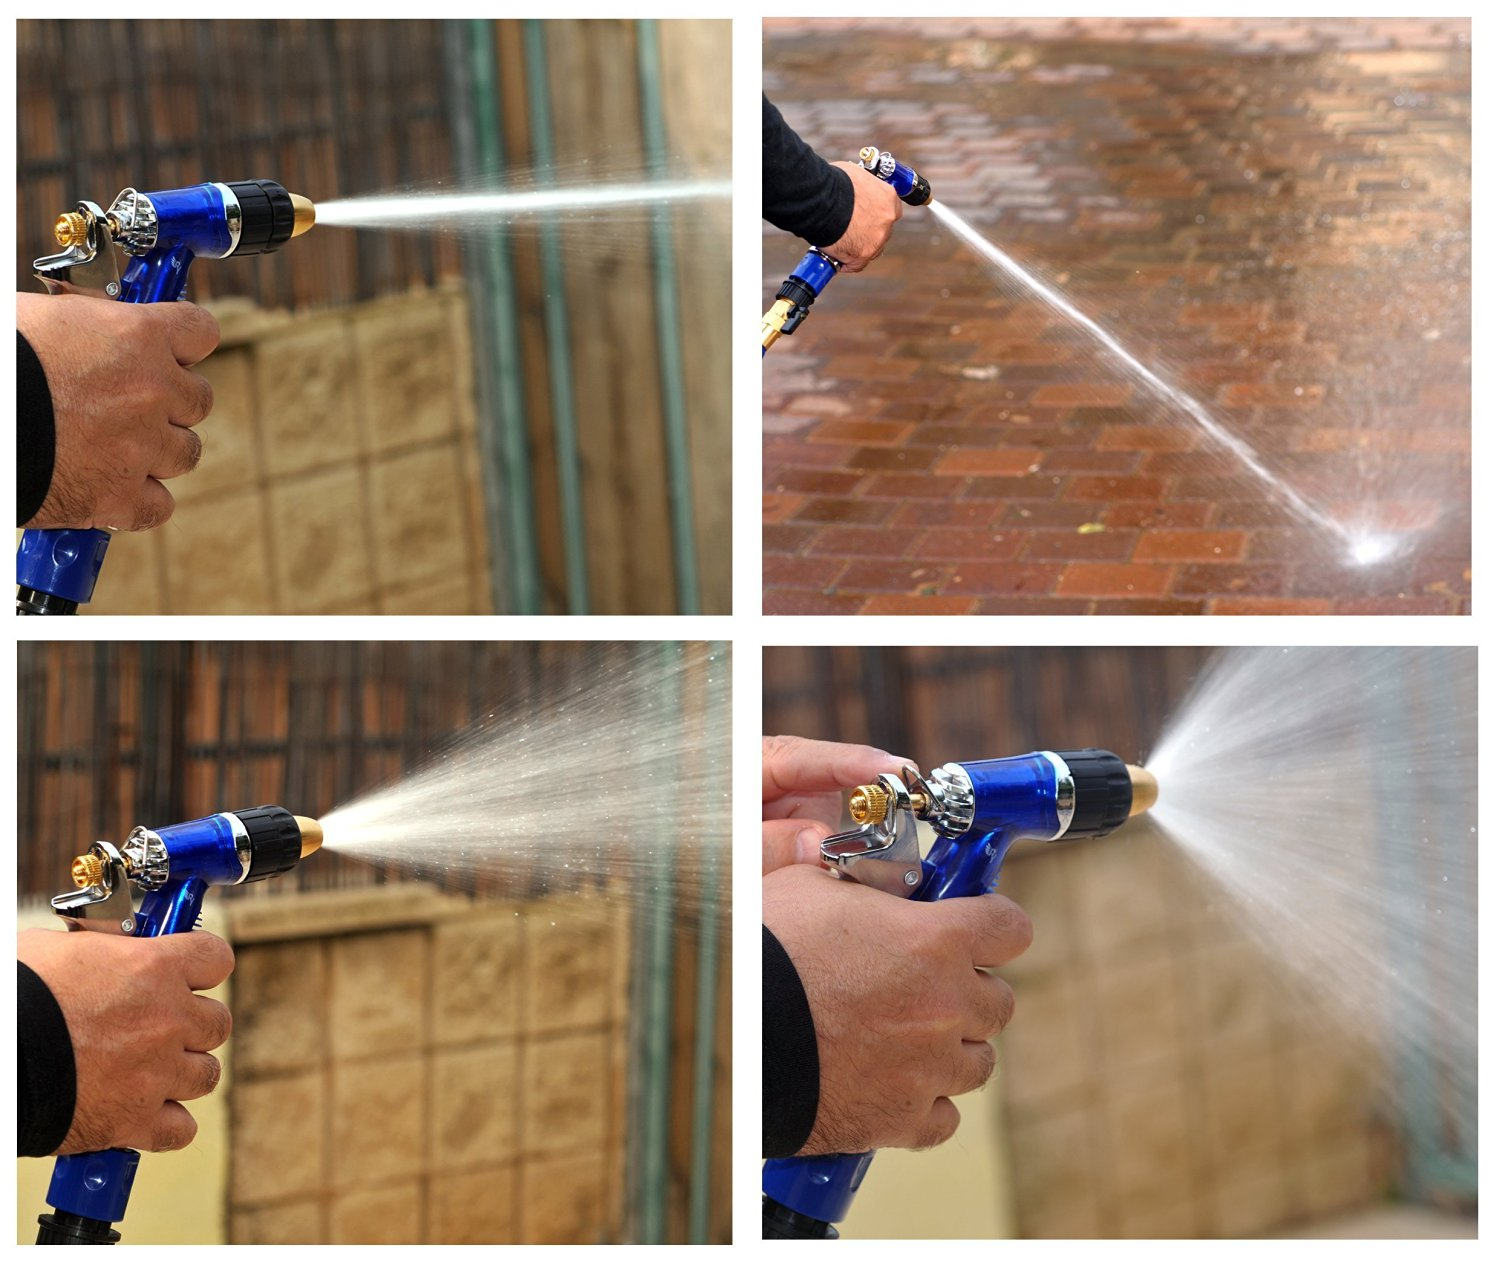 Happily Ever Rushed: RAAYA Garden Hose Nozzle Review